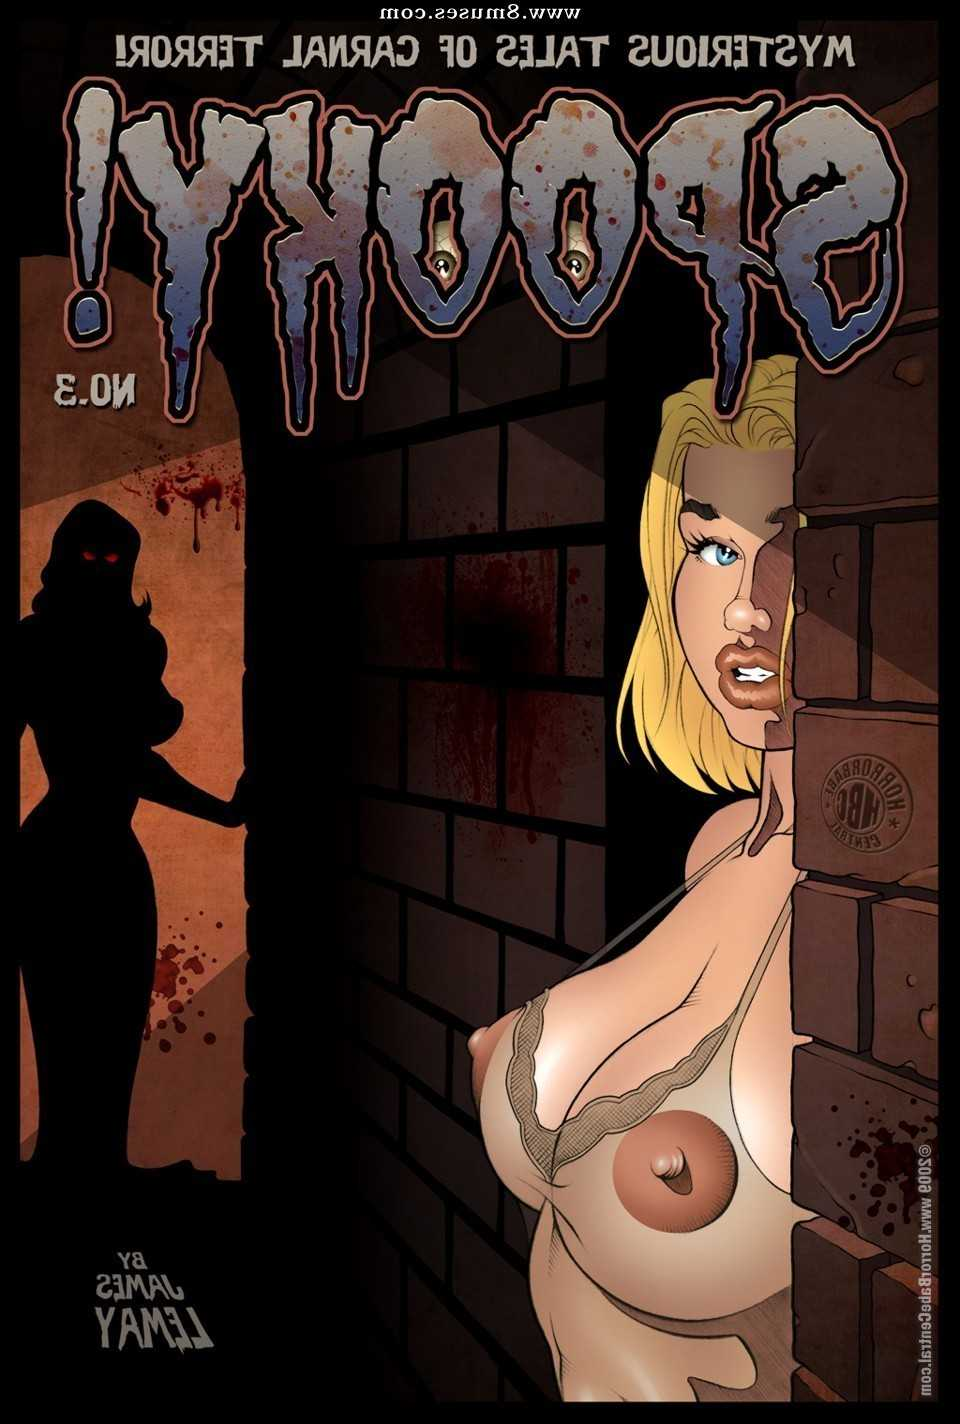 James-Lemay-Comics/Spooky Spooky__8muses_-_Sex_and_Porn_Comics_3.jpg